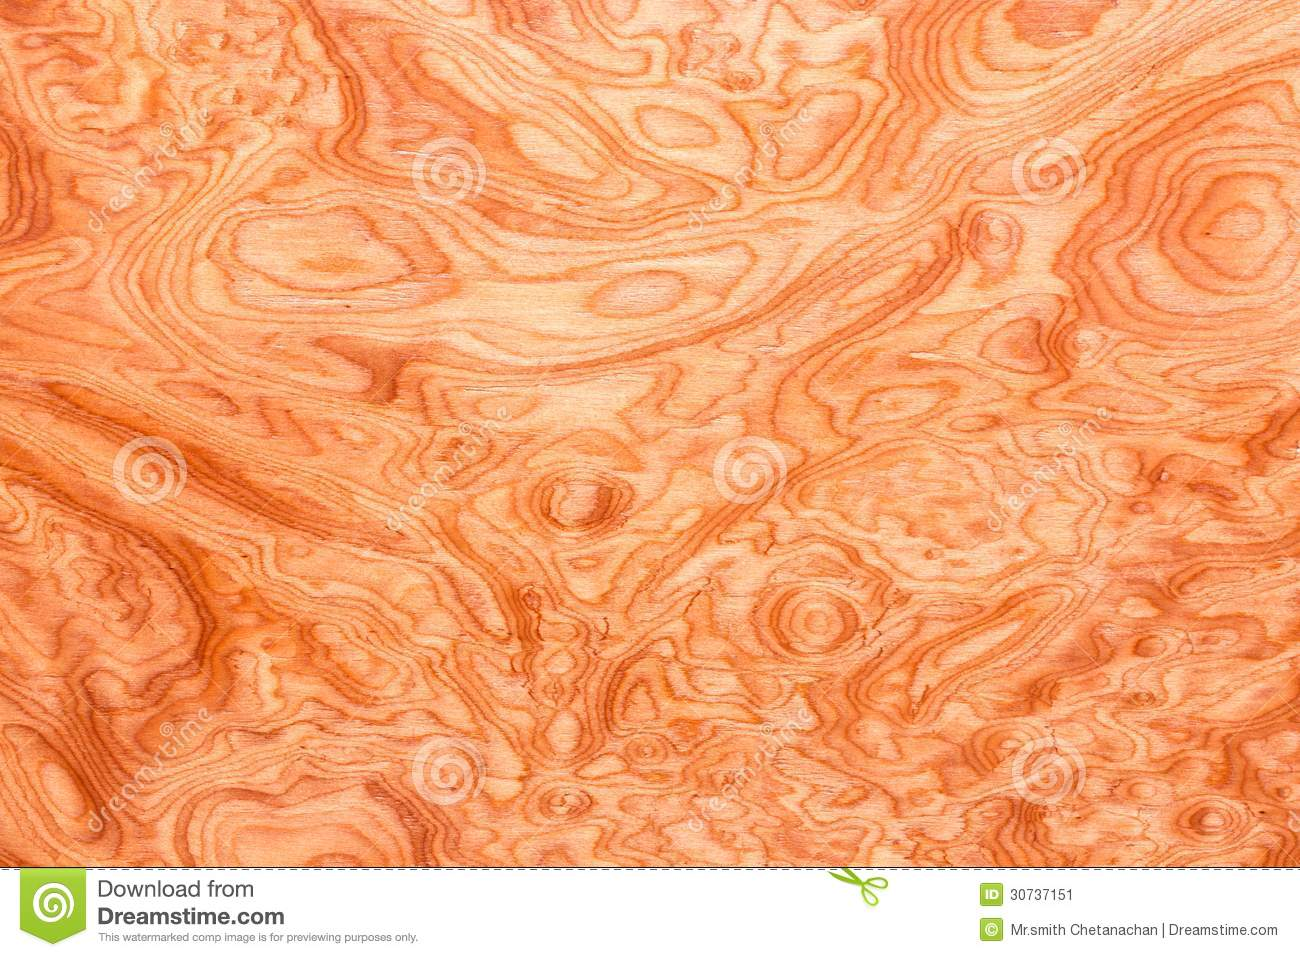 Real Wood Grain Texture Stock Image Image Of Grain Hard